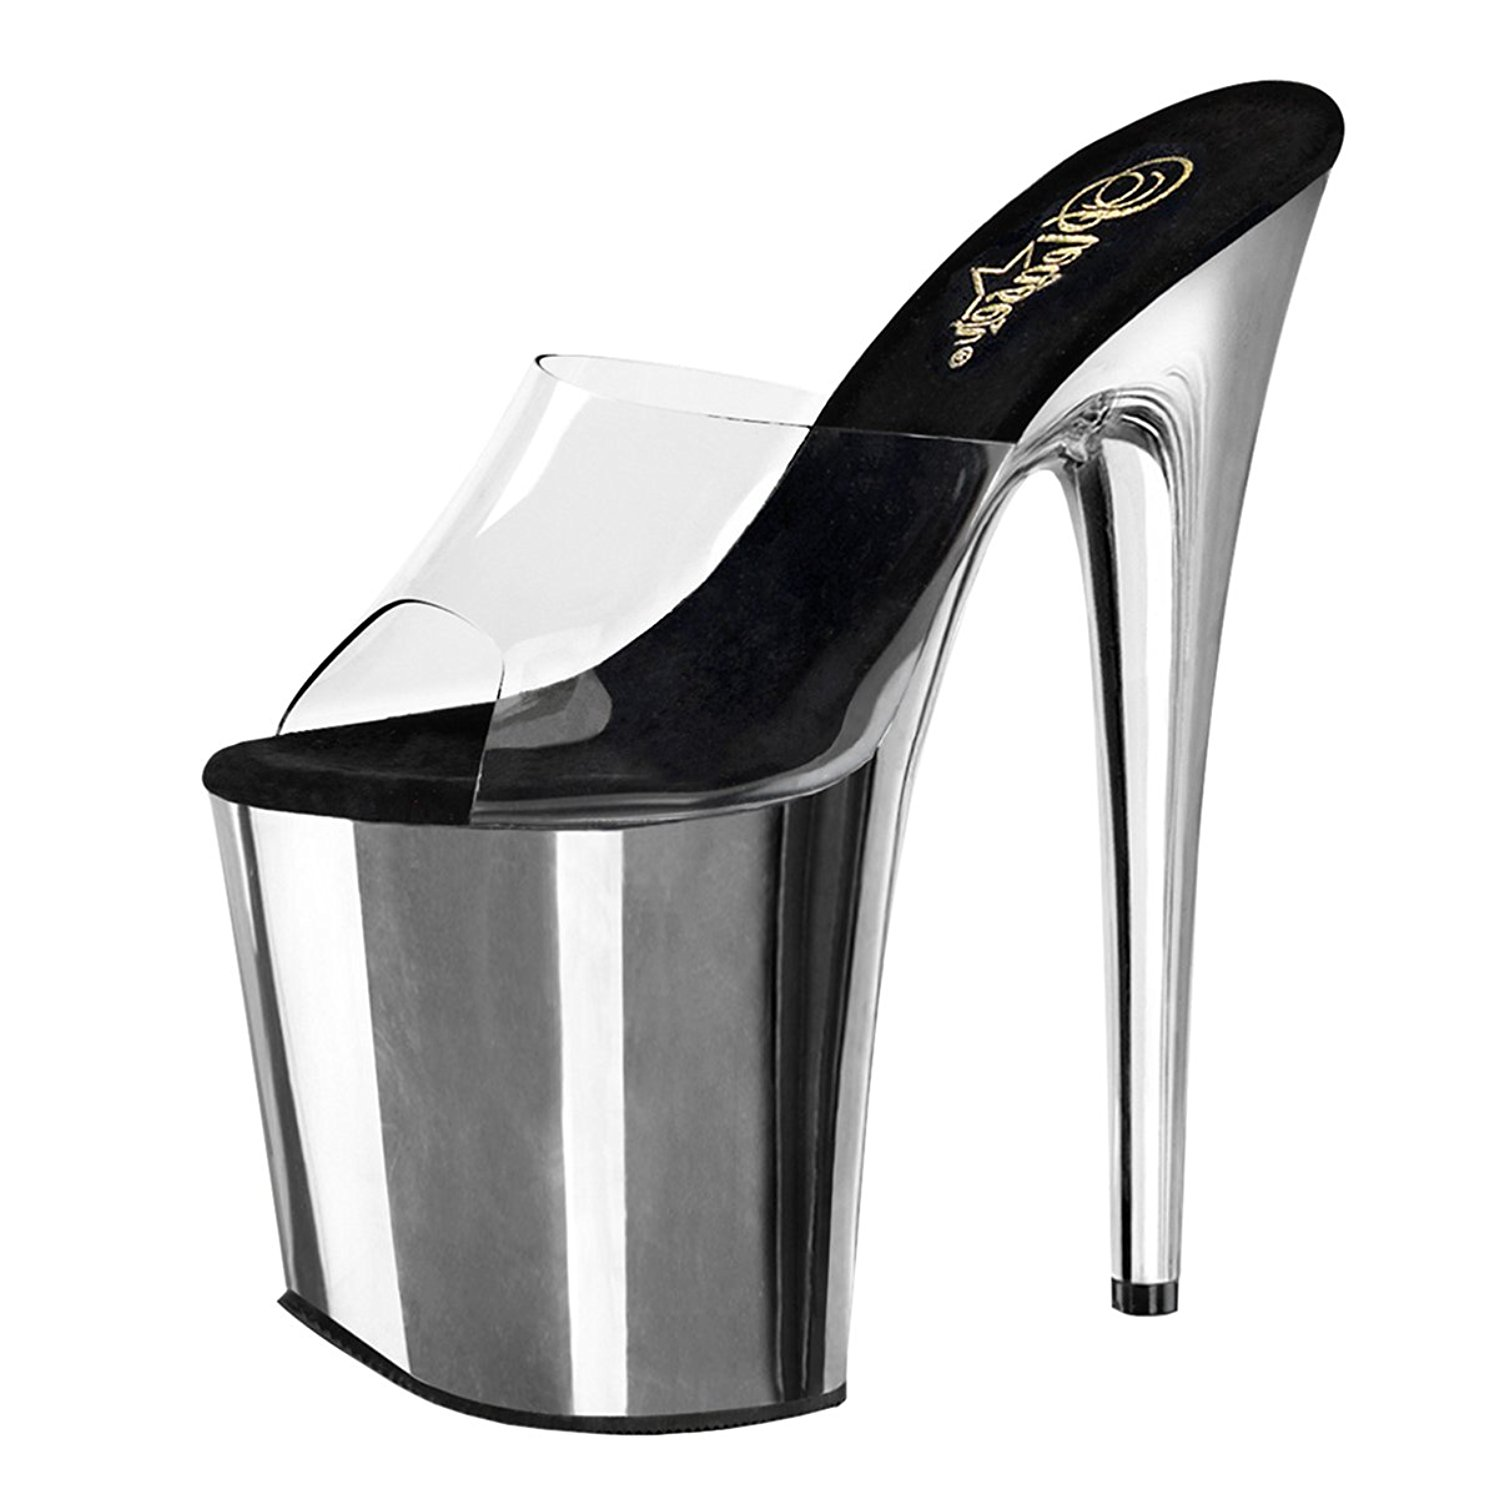 921fb2d067c Get Quotations · Summitfashions Womens Silver Shoes Platform Sandals Clear  Strap Slides Chrome 8 Inch Heels